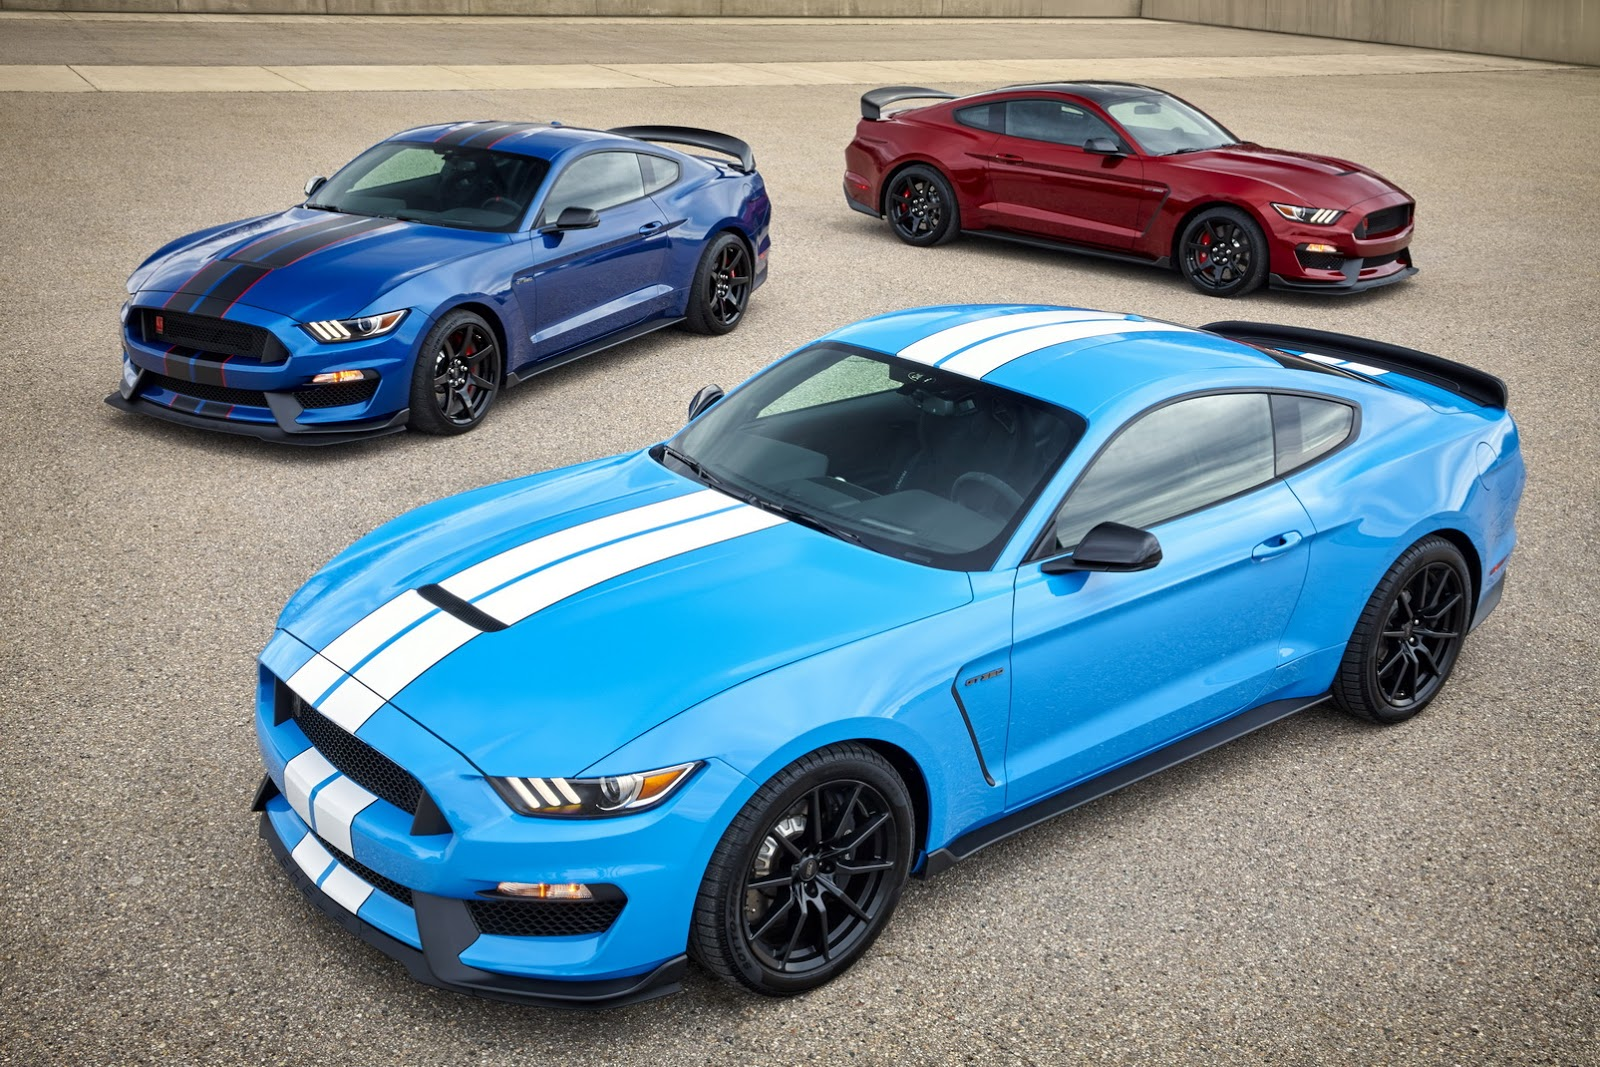 2017 mustang shelby gt350 first pics of new colors are mind blowing autoevolution. Black Bedroom Furniture Sets. Home Design Ideas